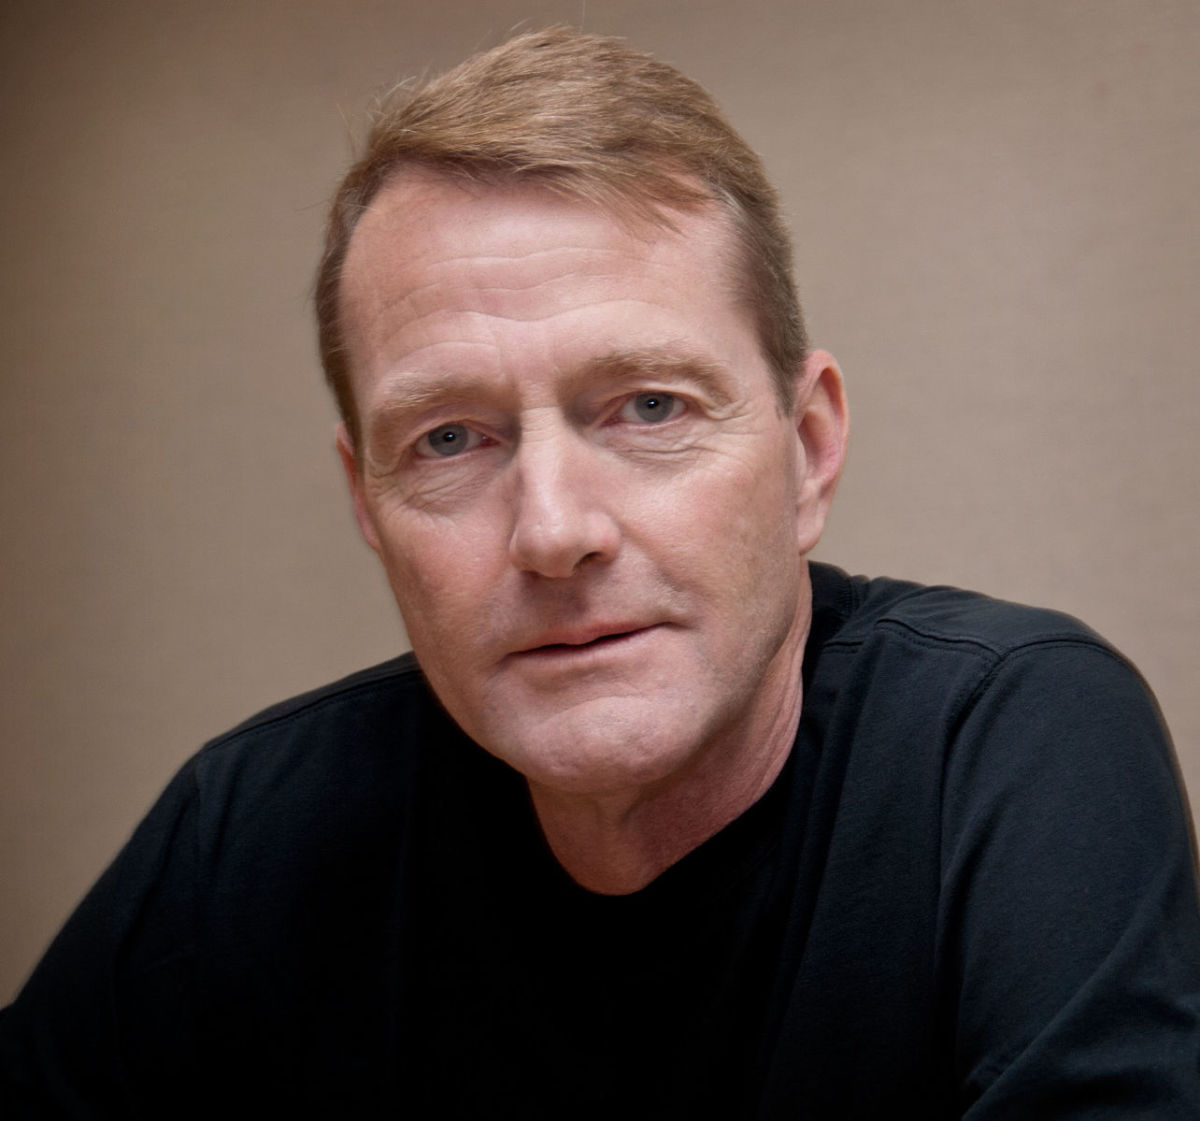 Lee Child, author of the Jack Reacher series.